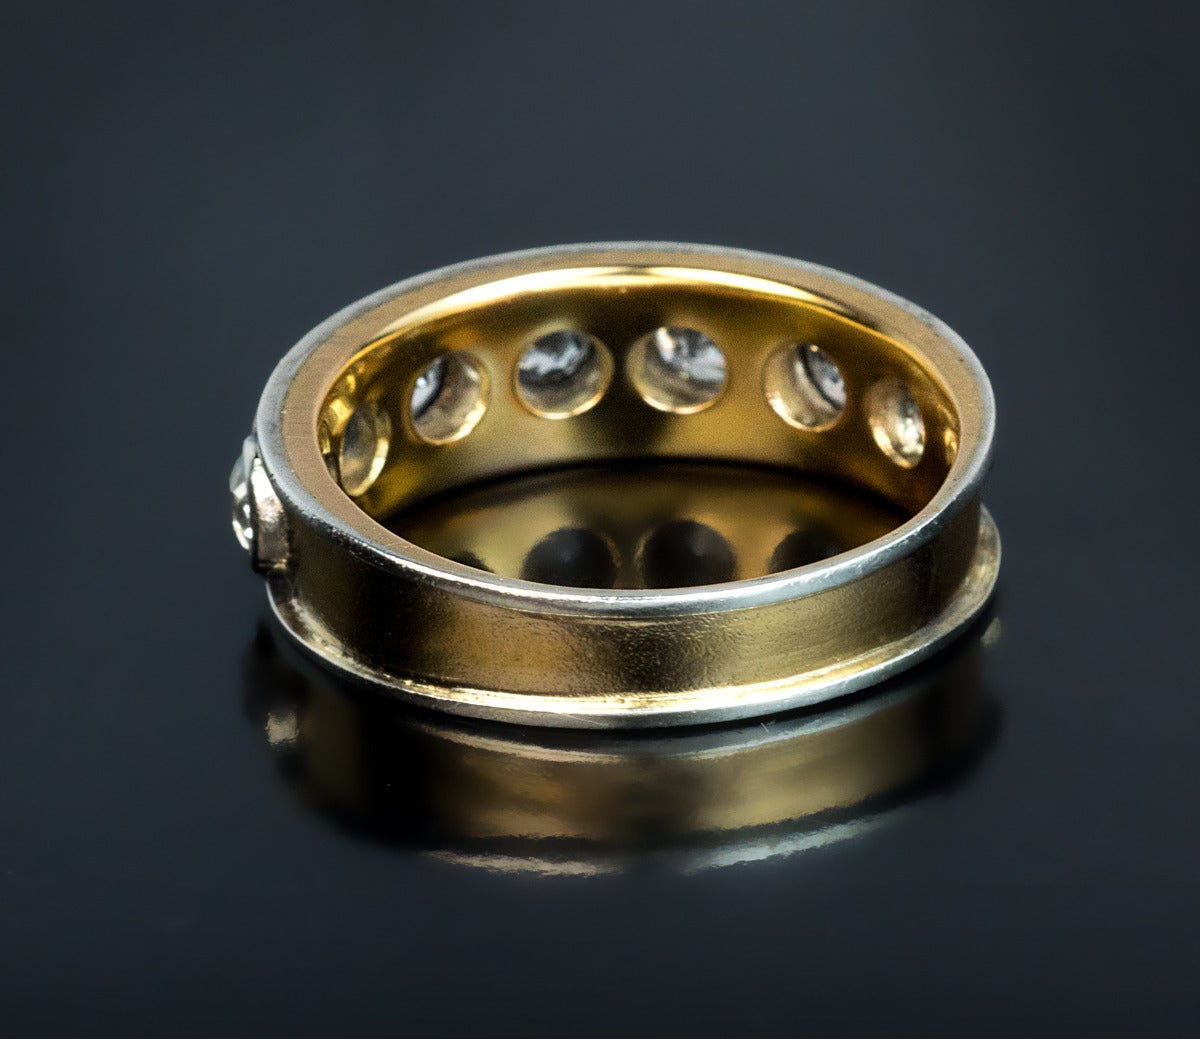 Antique Russian Men 39 S Diamond Gold Band Ring For Sale At 1stdibs